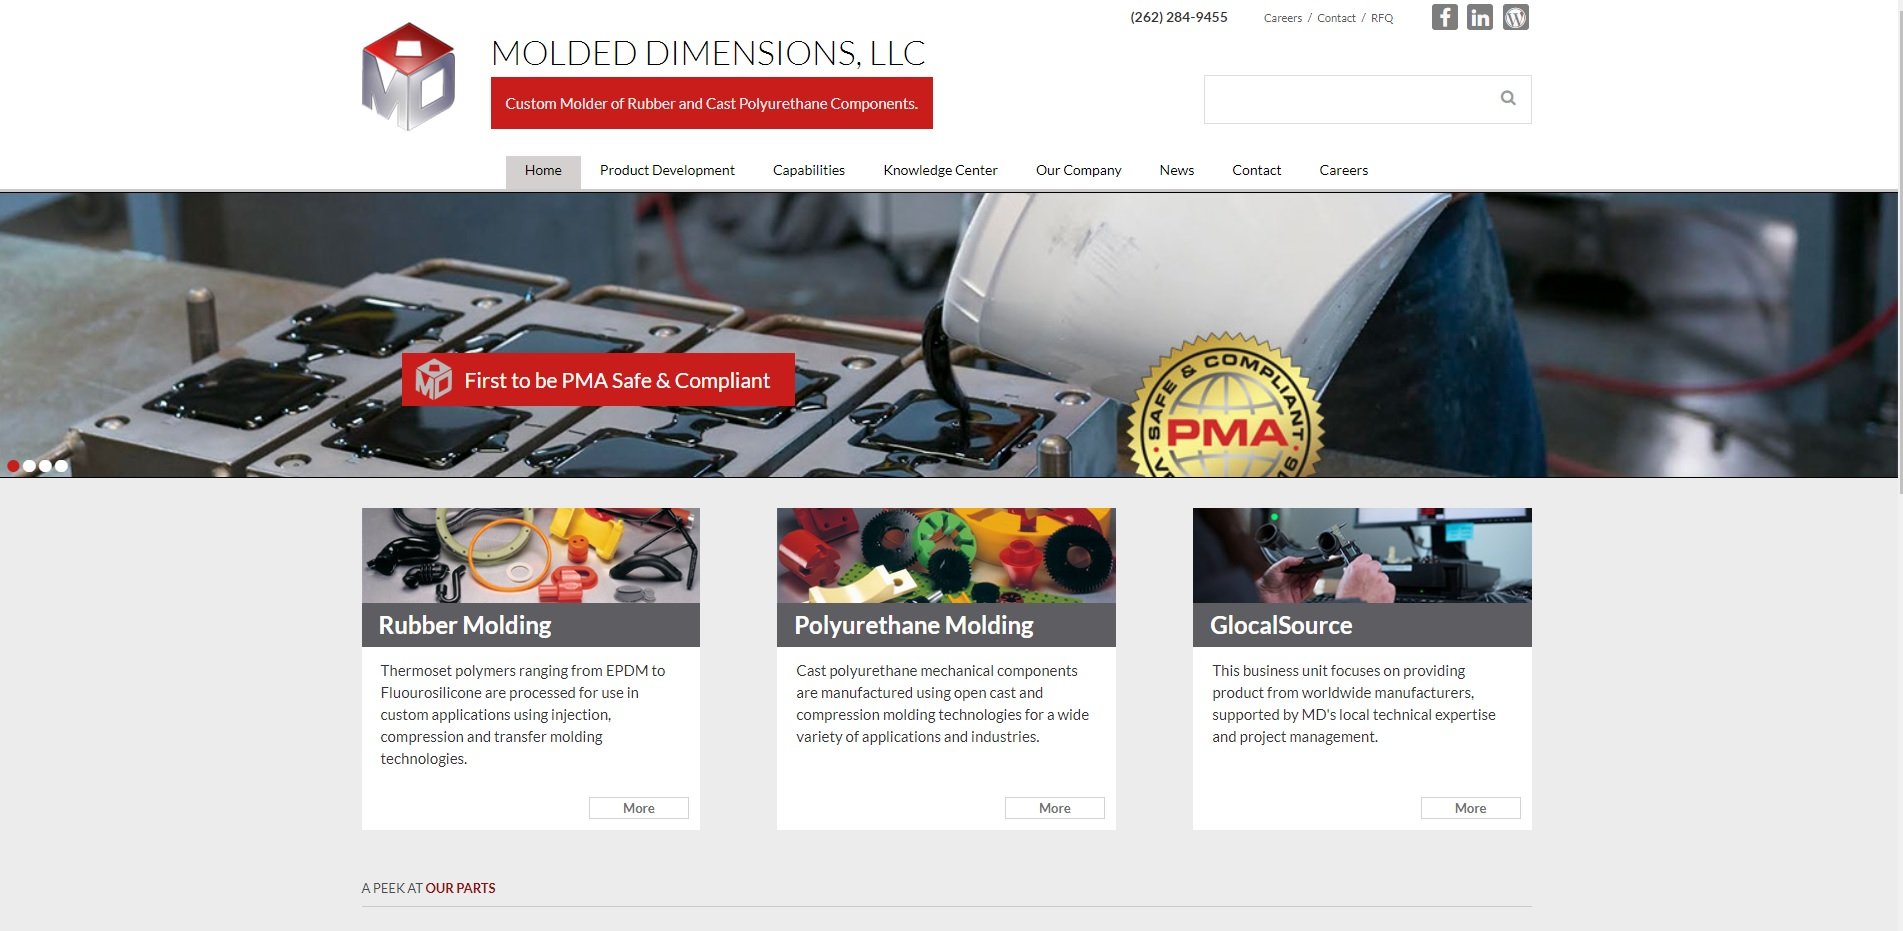 Molded Dimensions, LLC